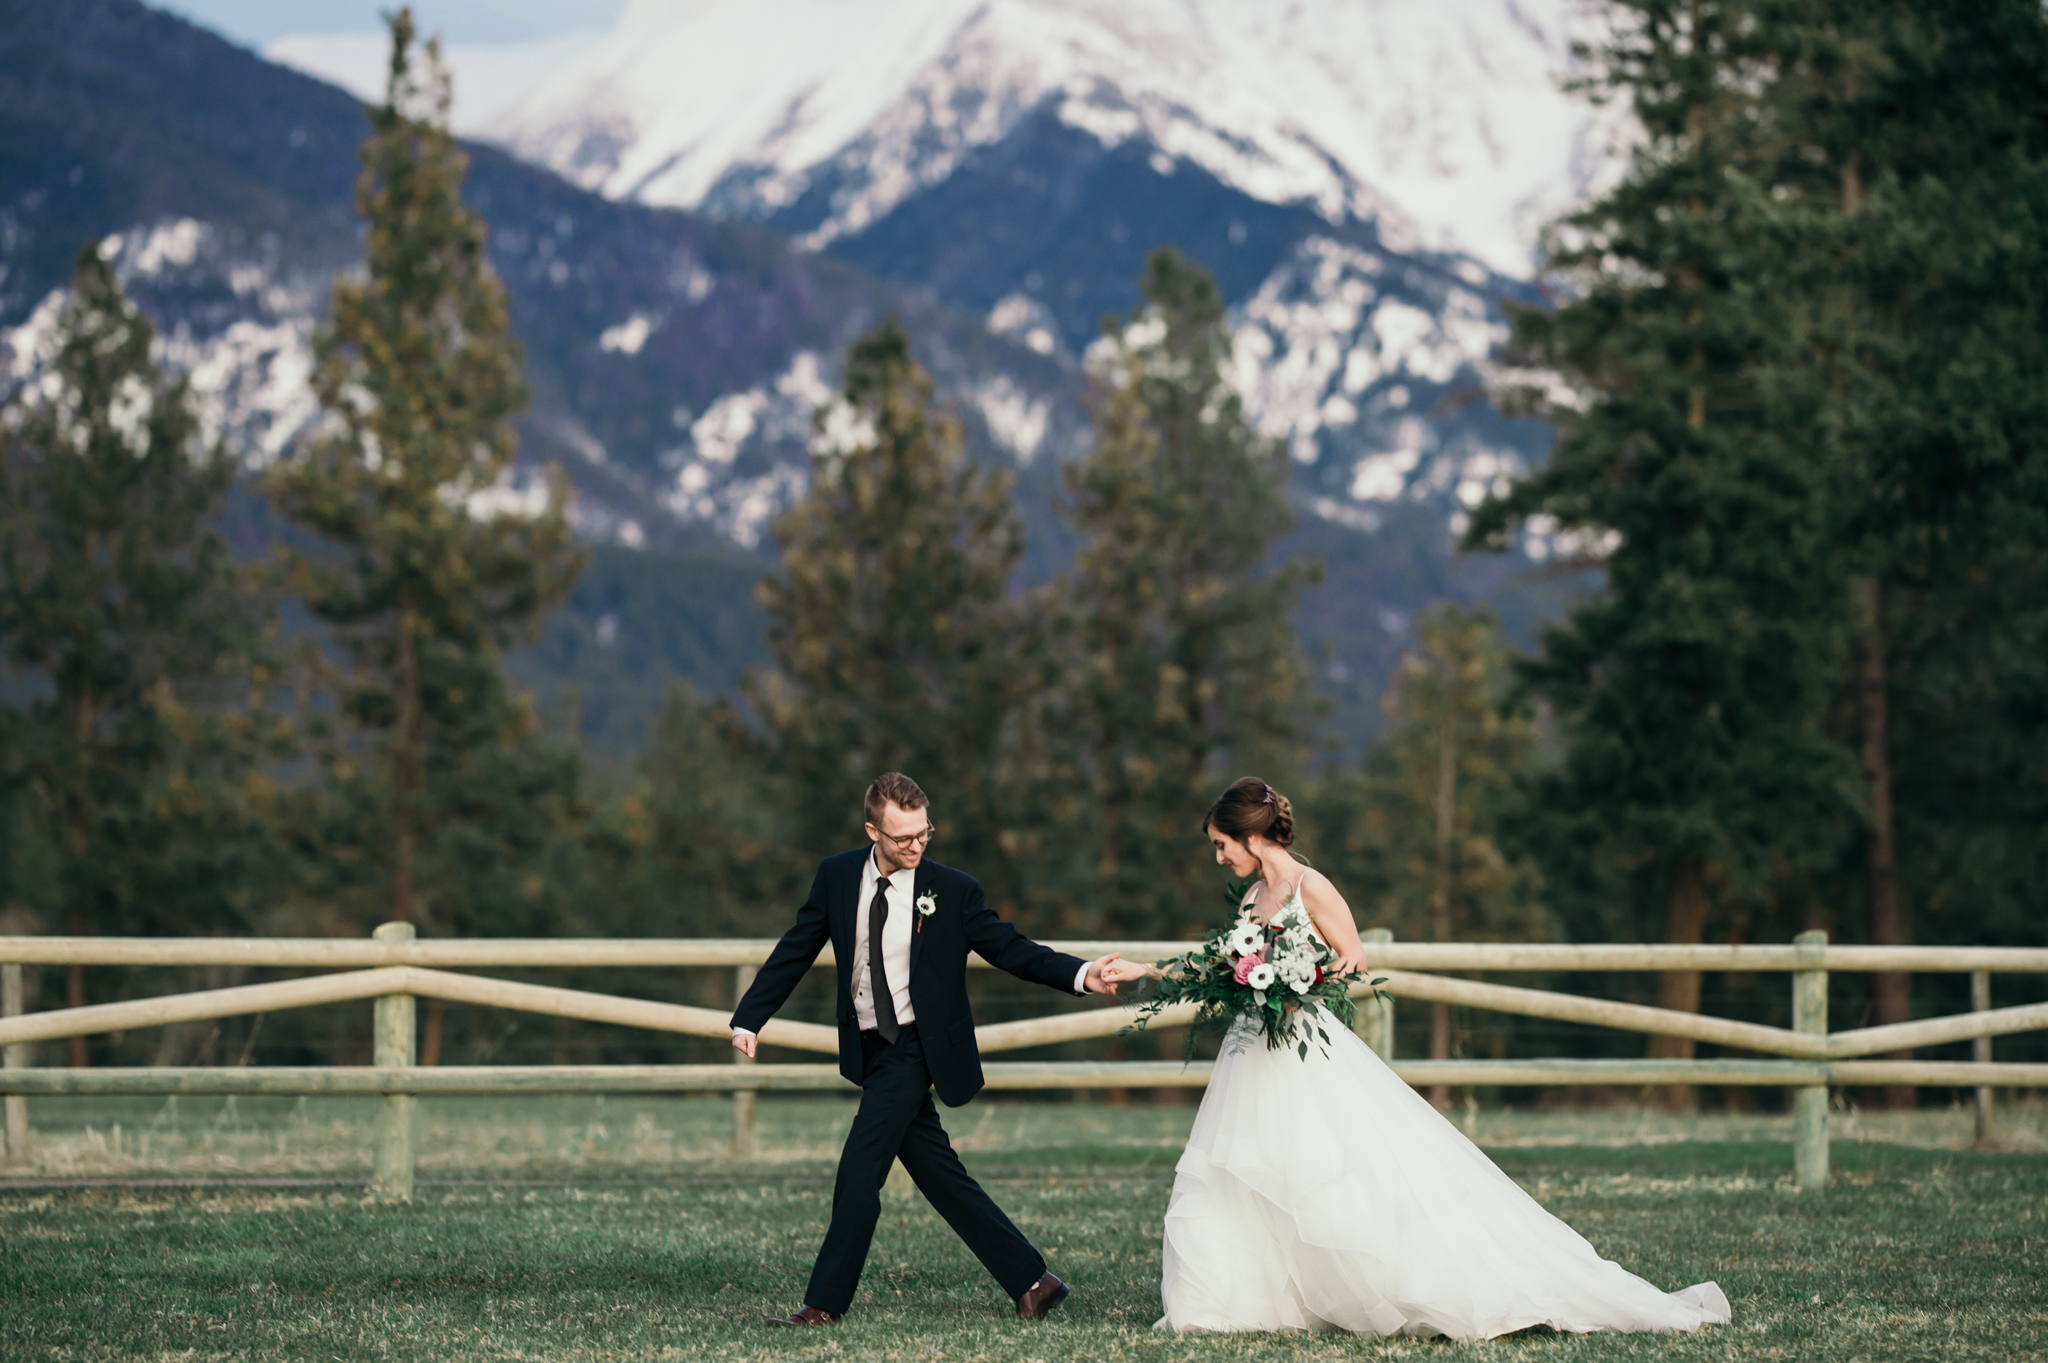 092 Jewel Tone Wedding Styled Shoot_Silver Knot_Montana Wedding Planner_Montana Wedding Photographer_Montana Wedding Videography_Honeybee Weddings-1450.jpg